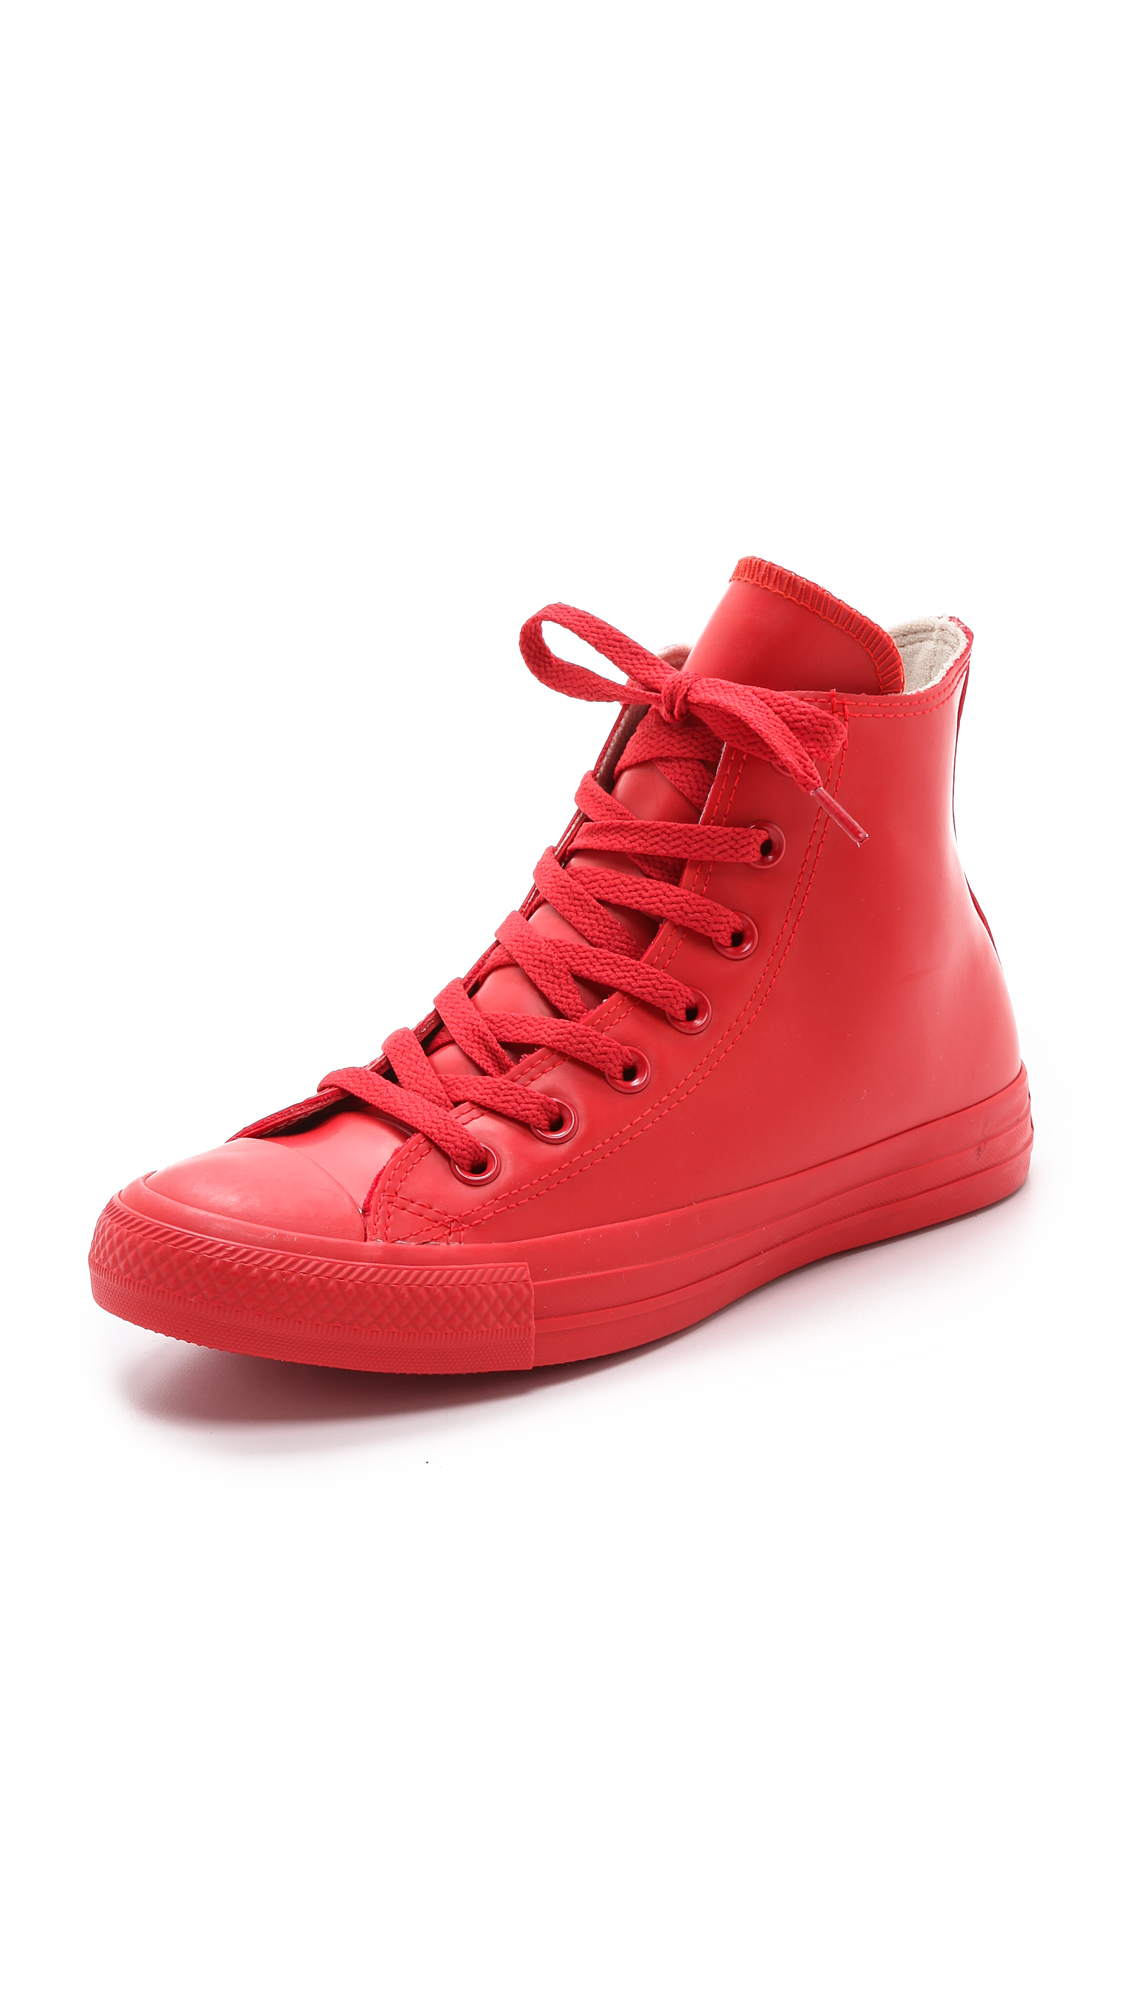 Women's Rubber Coated Chuck Taylor All Star Sneakers Red